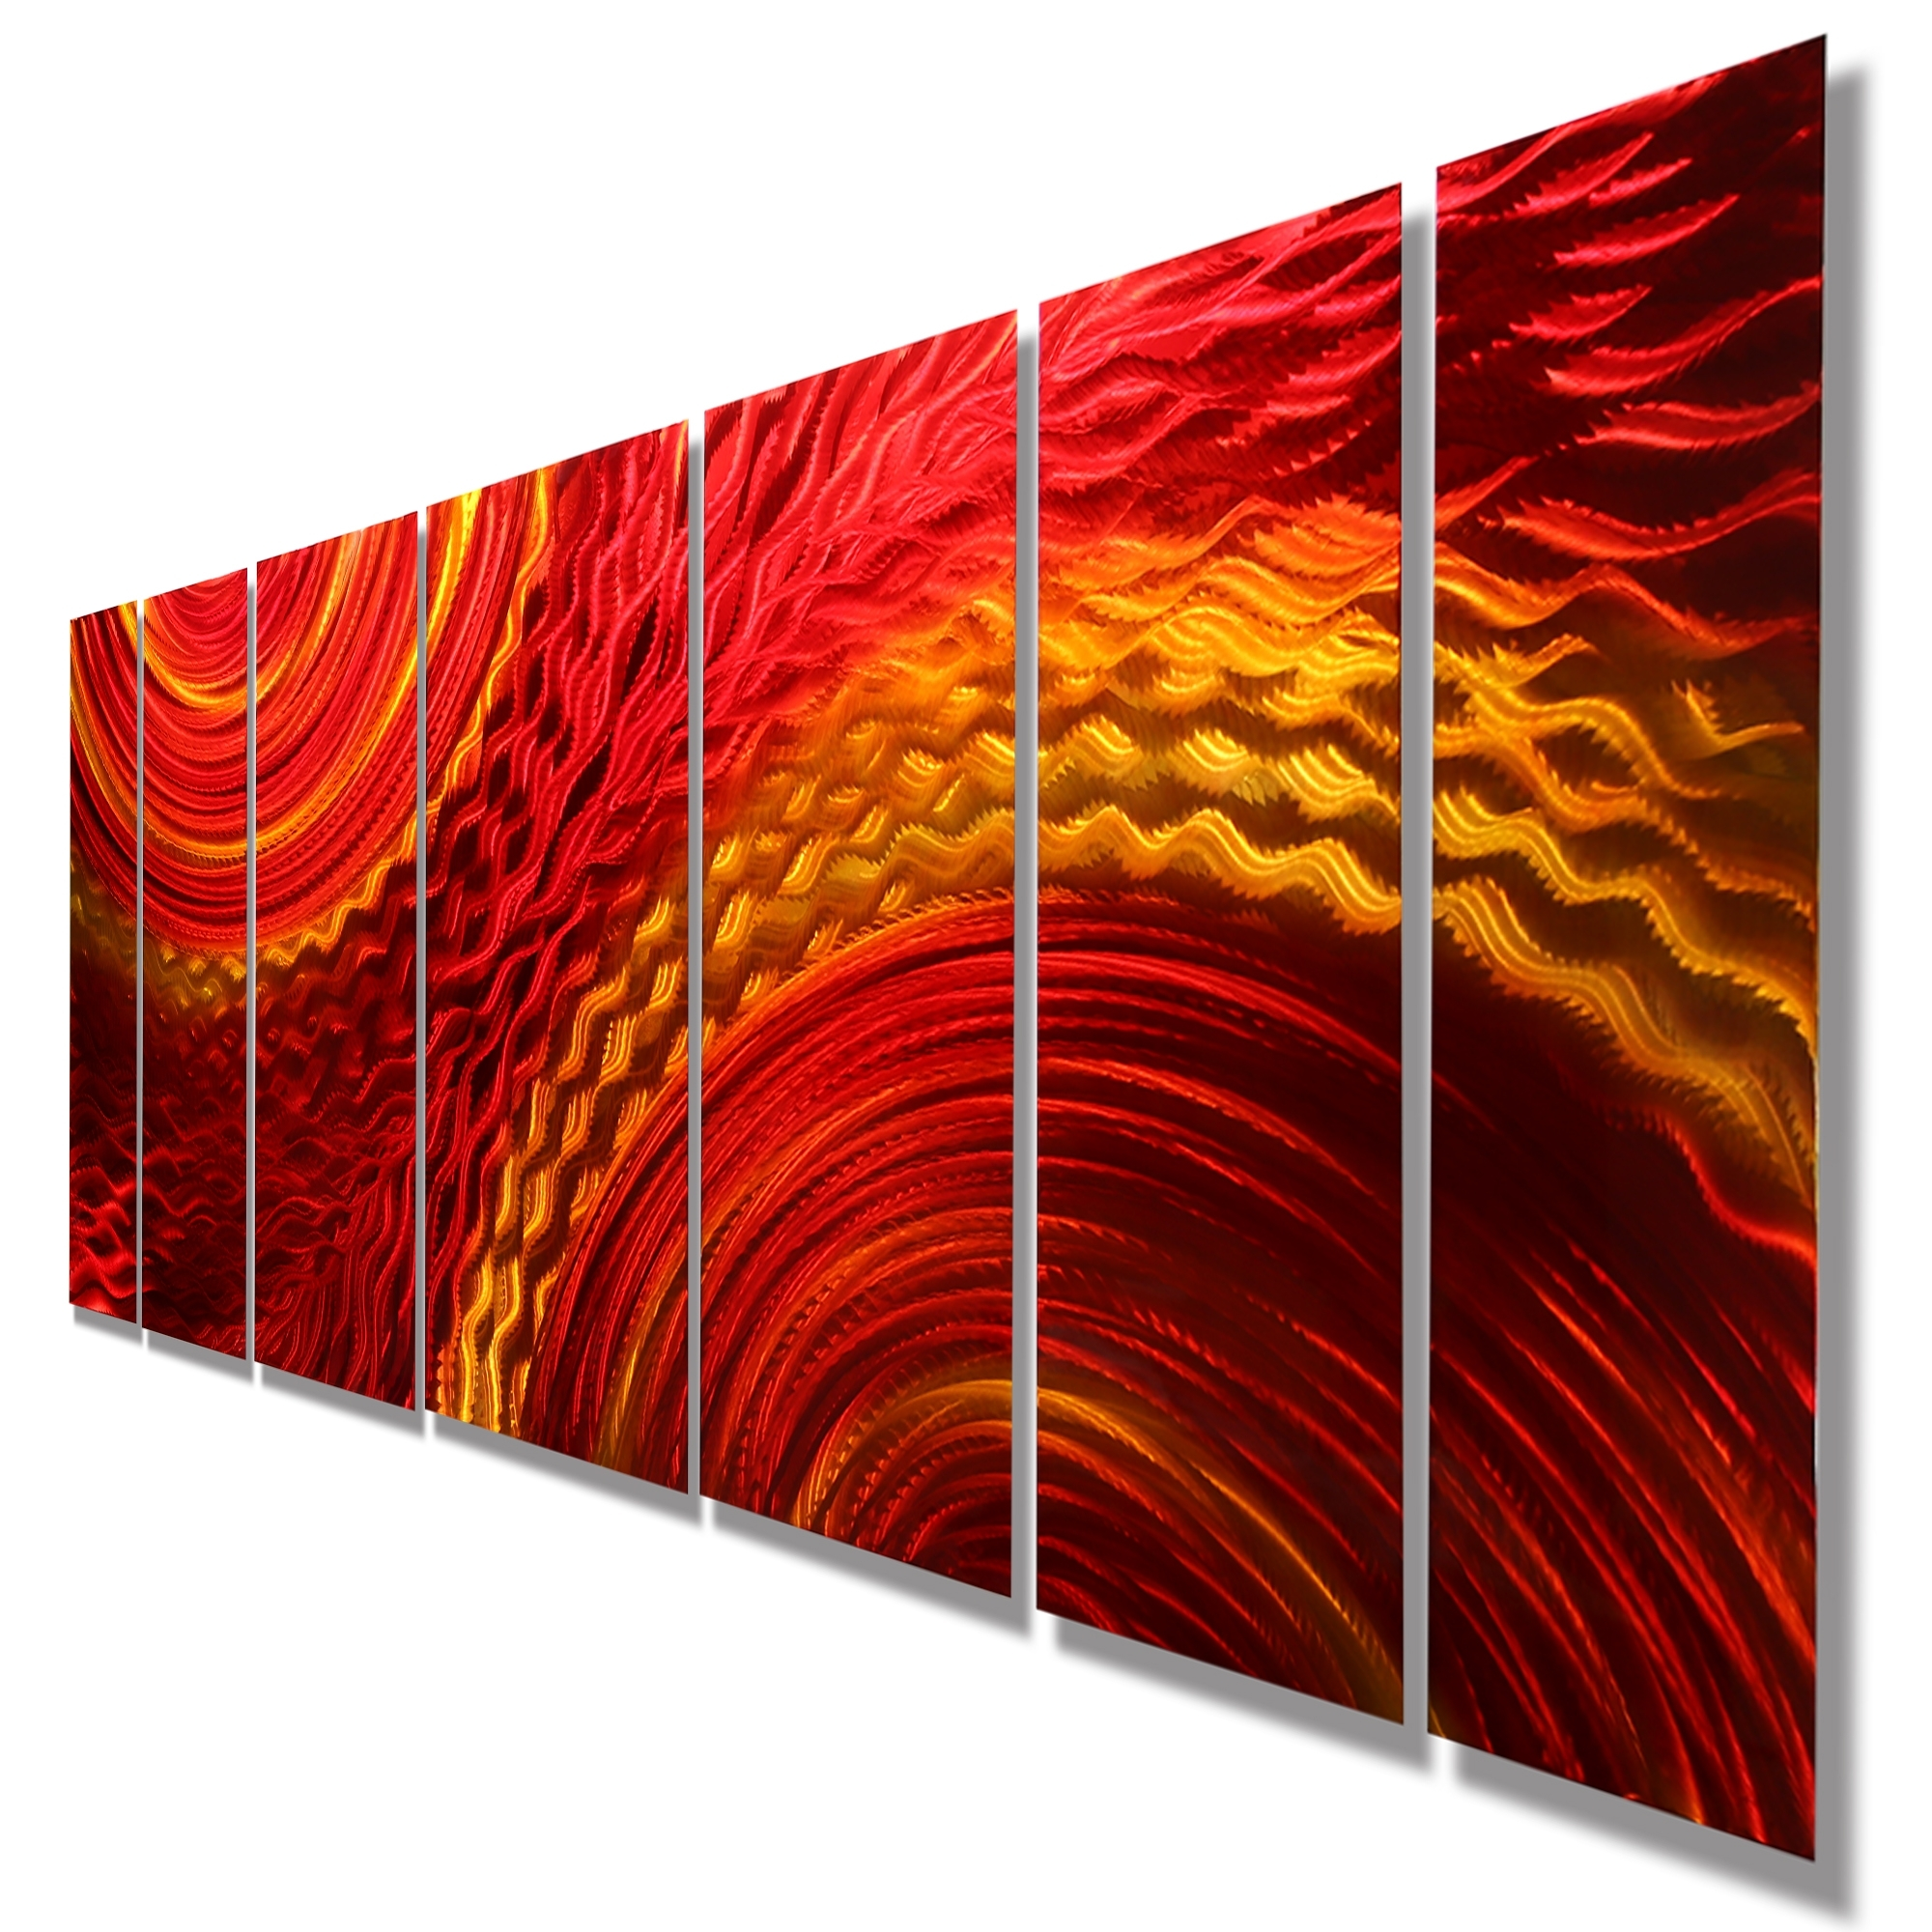 Home Decor: Alluring Abstract Metal Wall Art With Harvest Moods Xl Within Most Recent Abstract Wall Art Australia (Gallery 6 of 20)